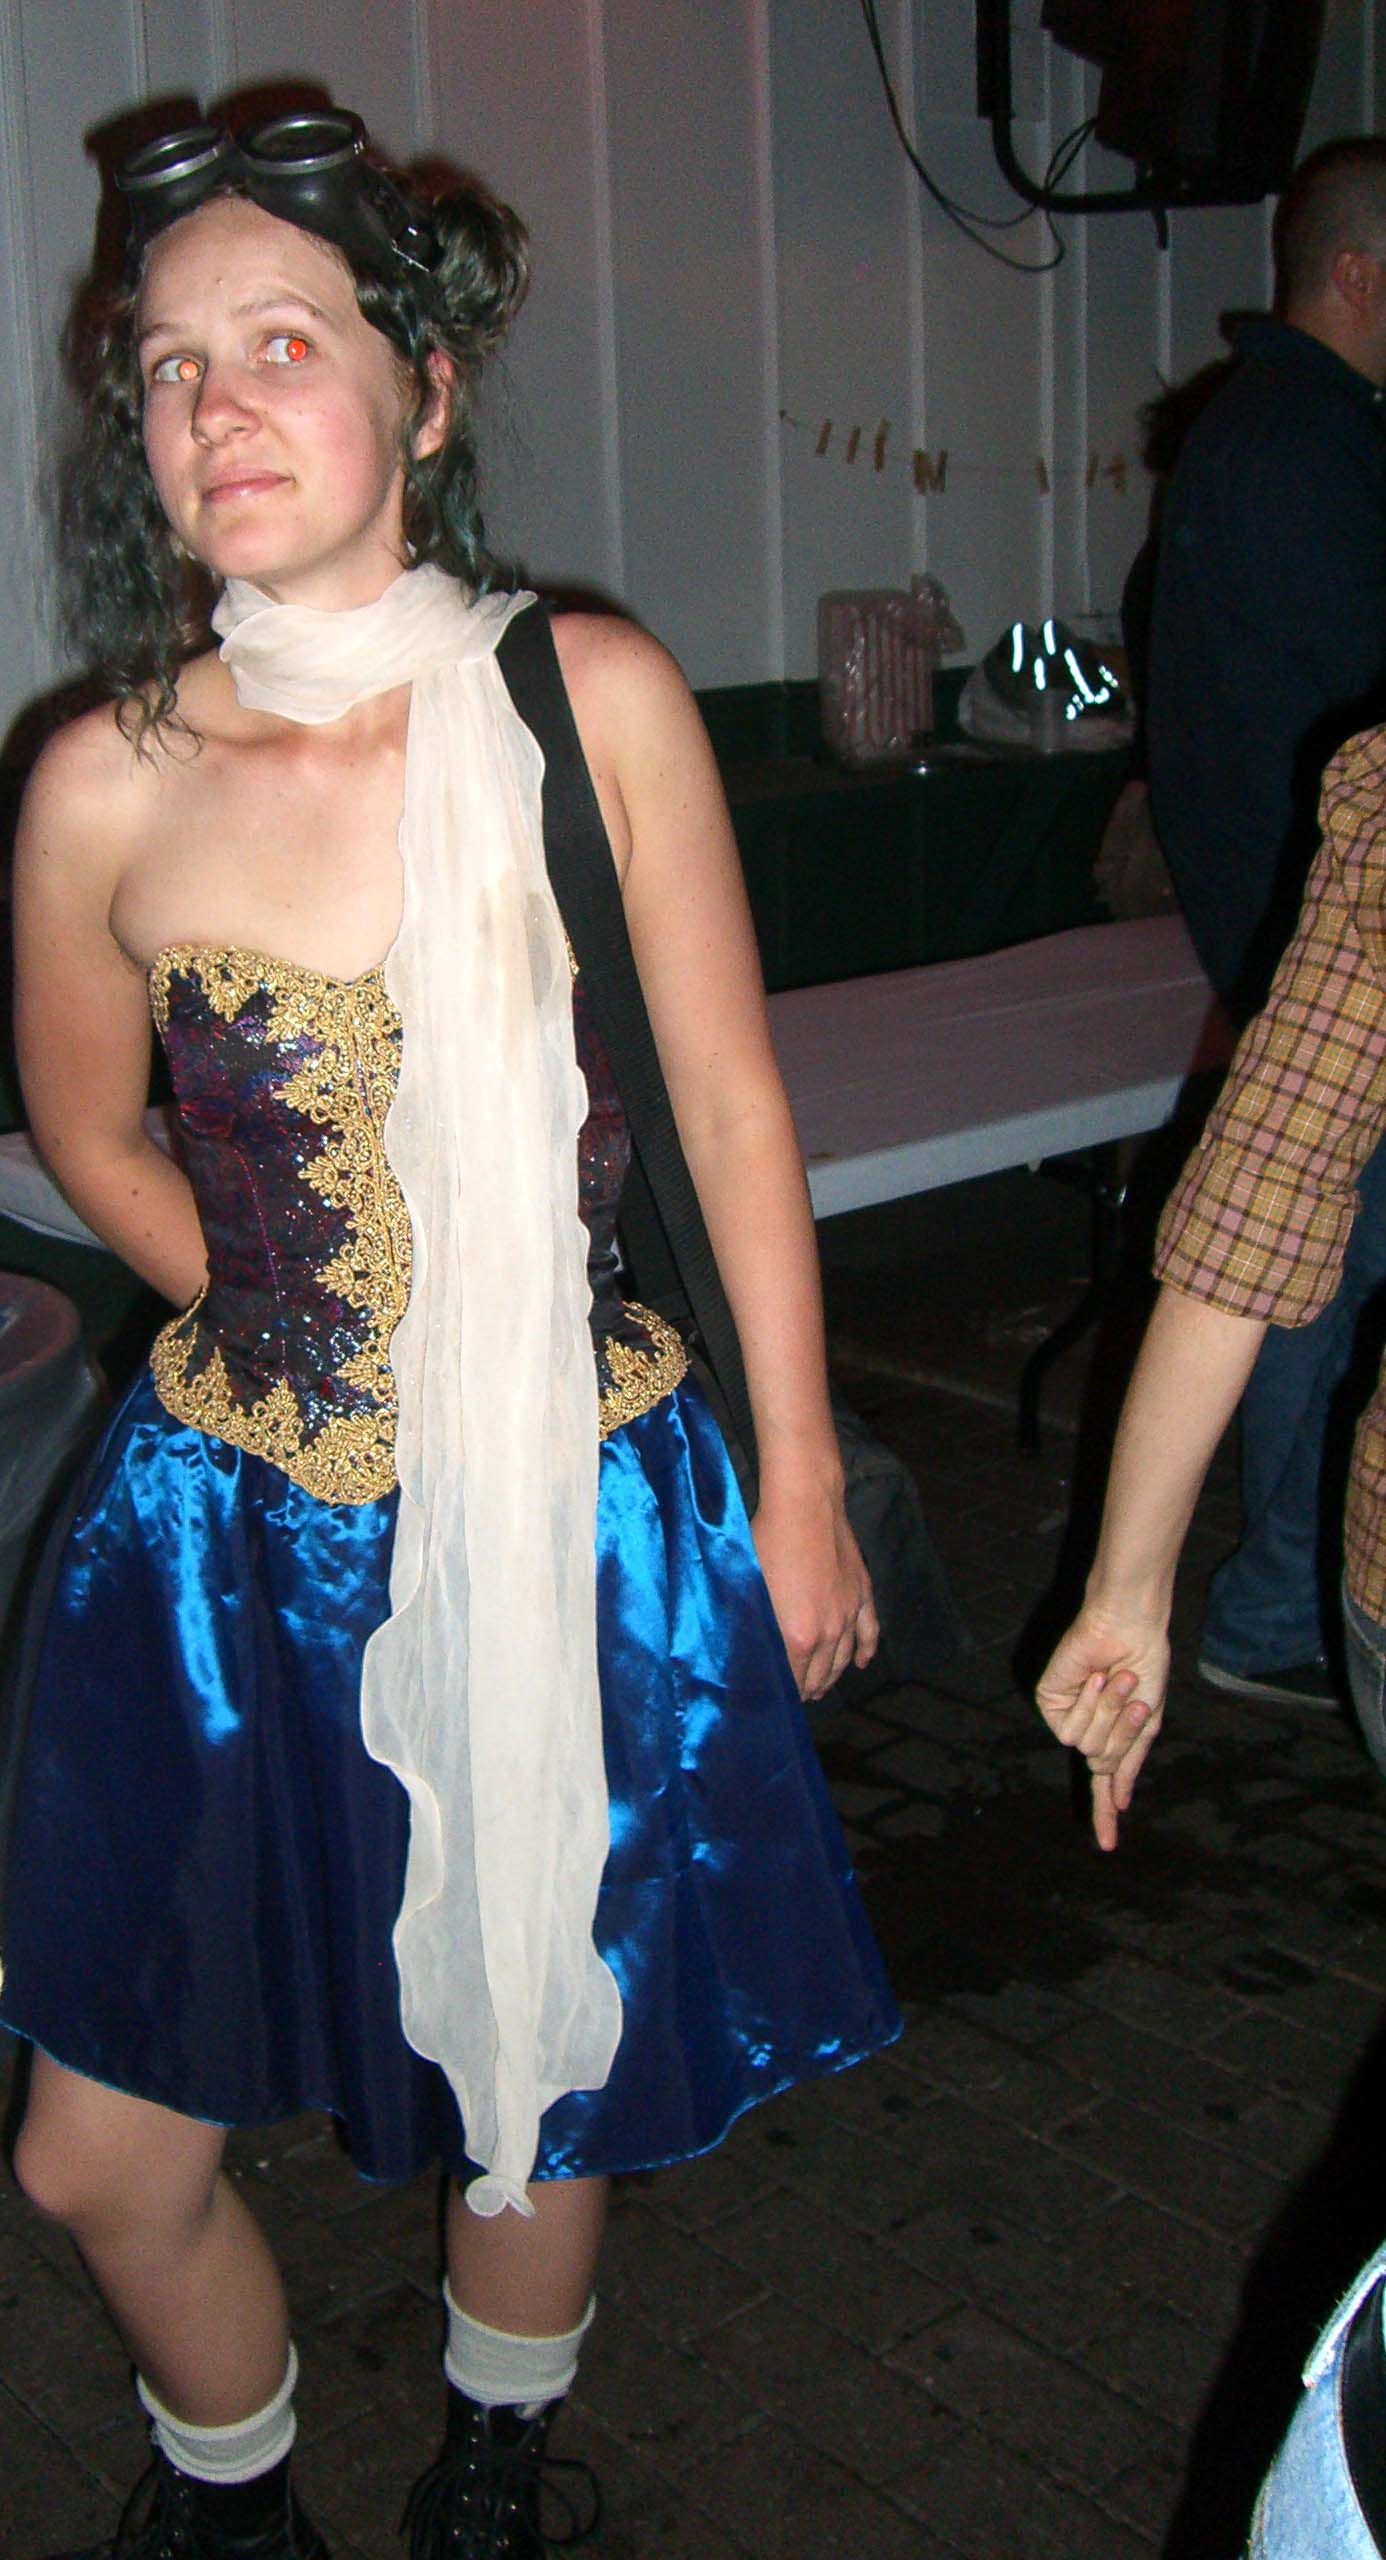 Gold-and-blue dress, long white scarf and goggles - Steampunk party at SXSW 2007